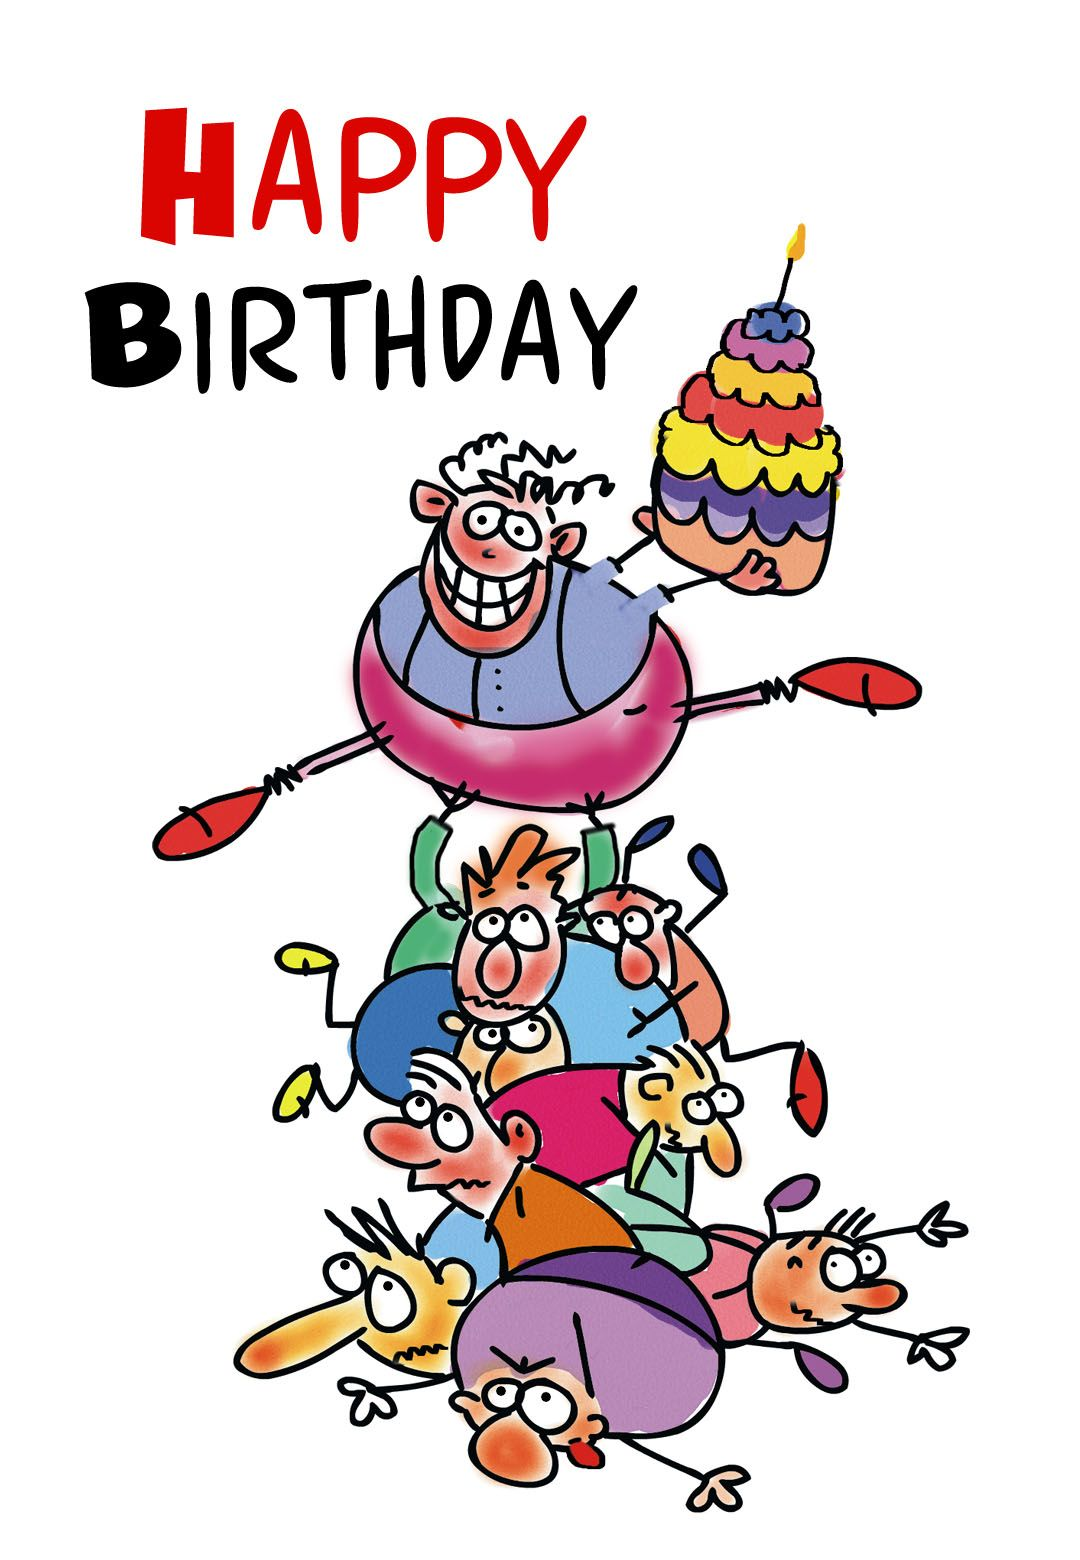 Funny Birthday Free Birthday Card Greetings Island in